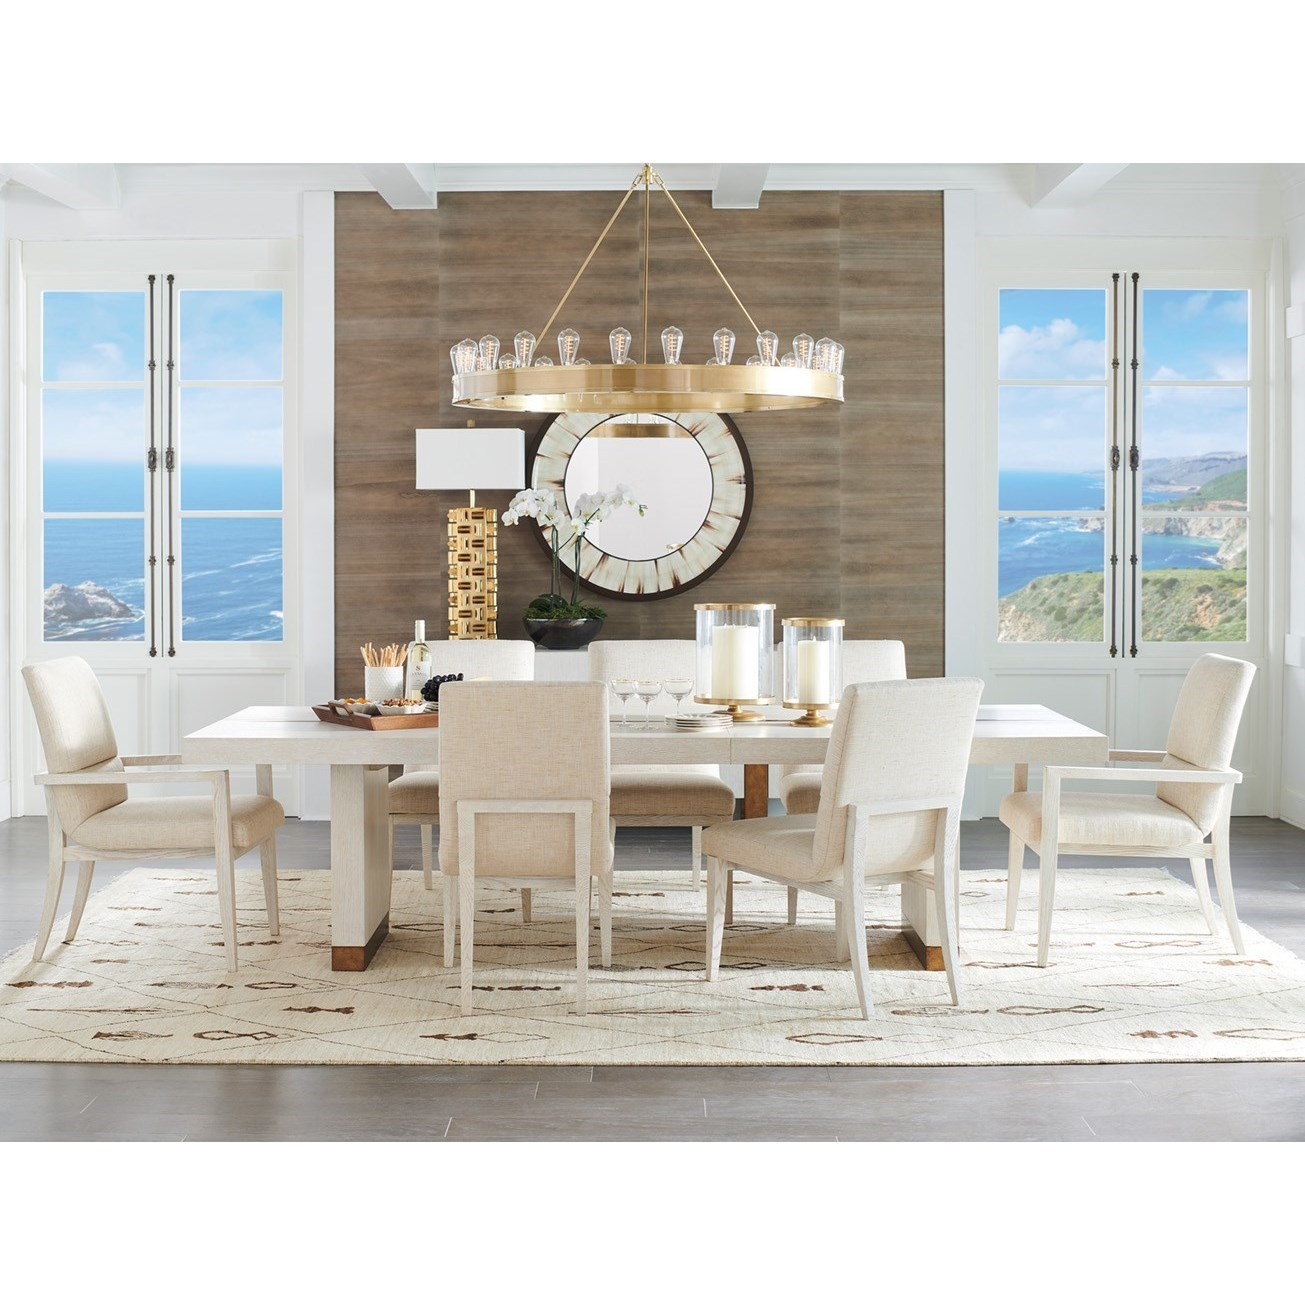 Carmel 9-Piece Dining Set with Upholstered Chairs by Barclay Butera at Baer's Furniture